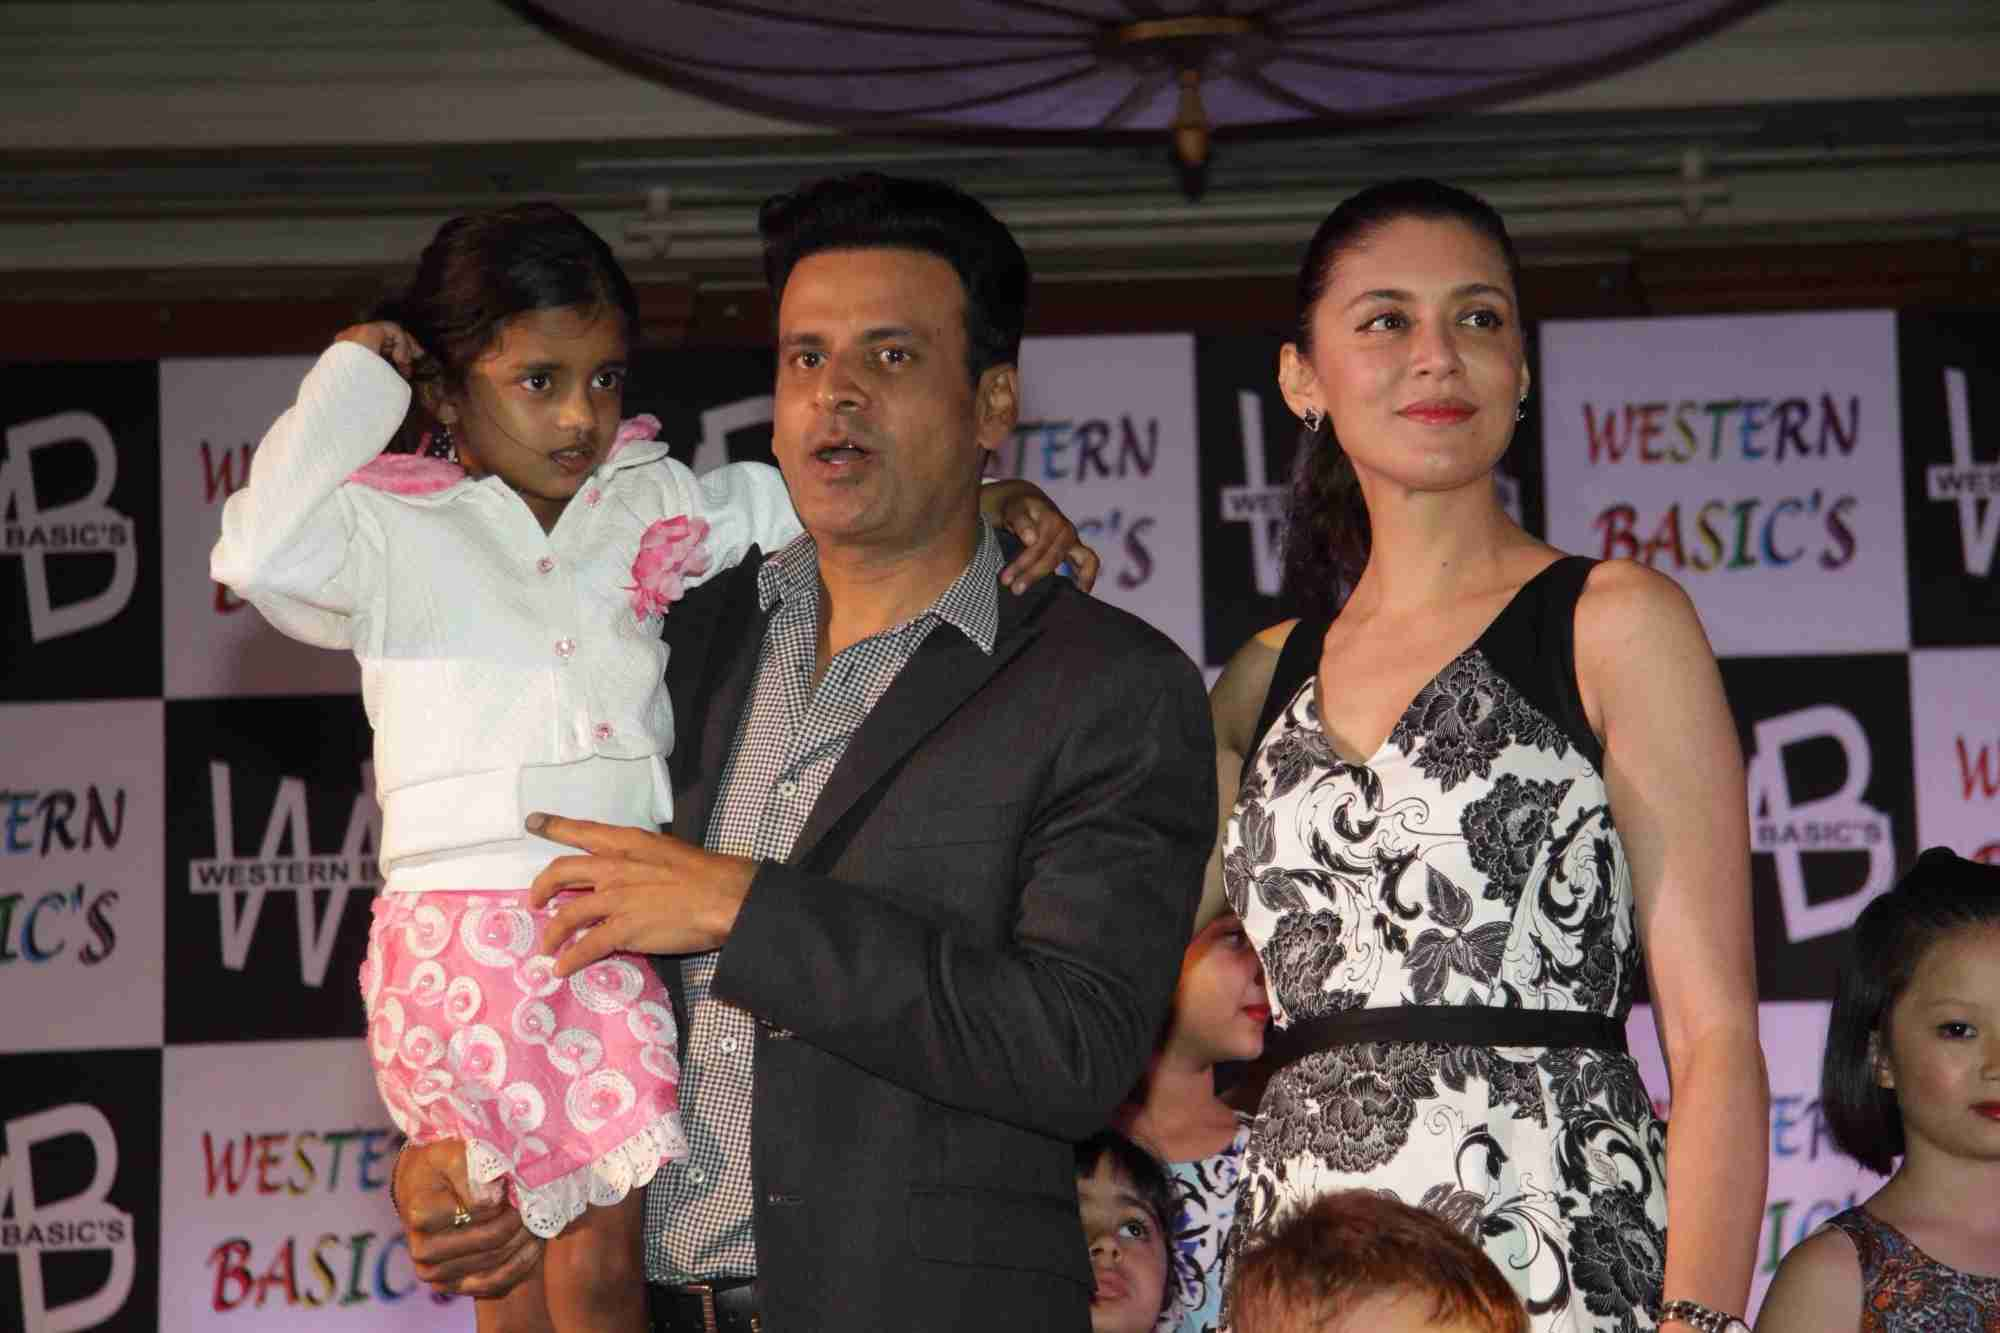 Manoj & Neha Bajpai Launches New Kids Wear Fashion Brand Western Basics in Mumbai